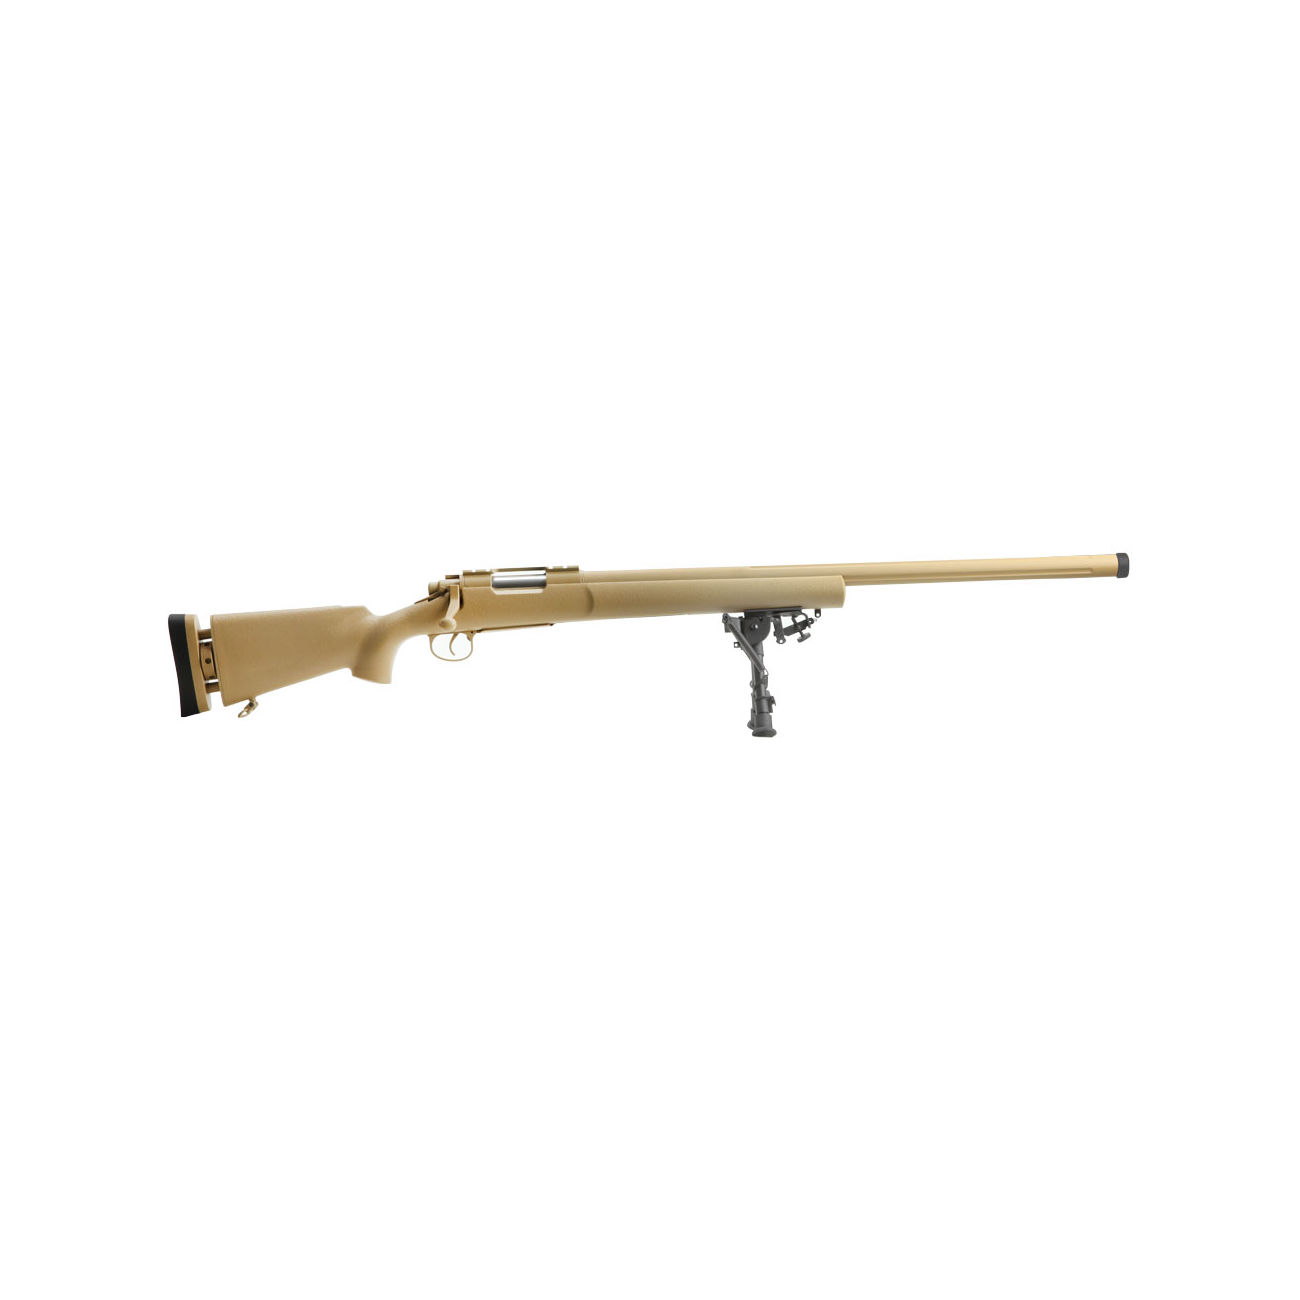 Echo1 M28 Bolt Action Snipergewehr Generation 2 Springer desert tan 1